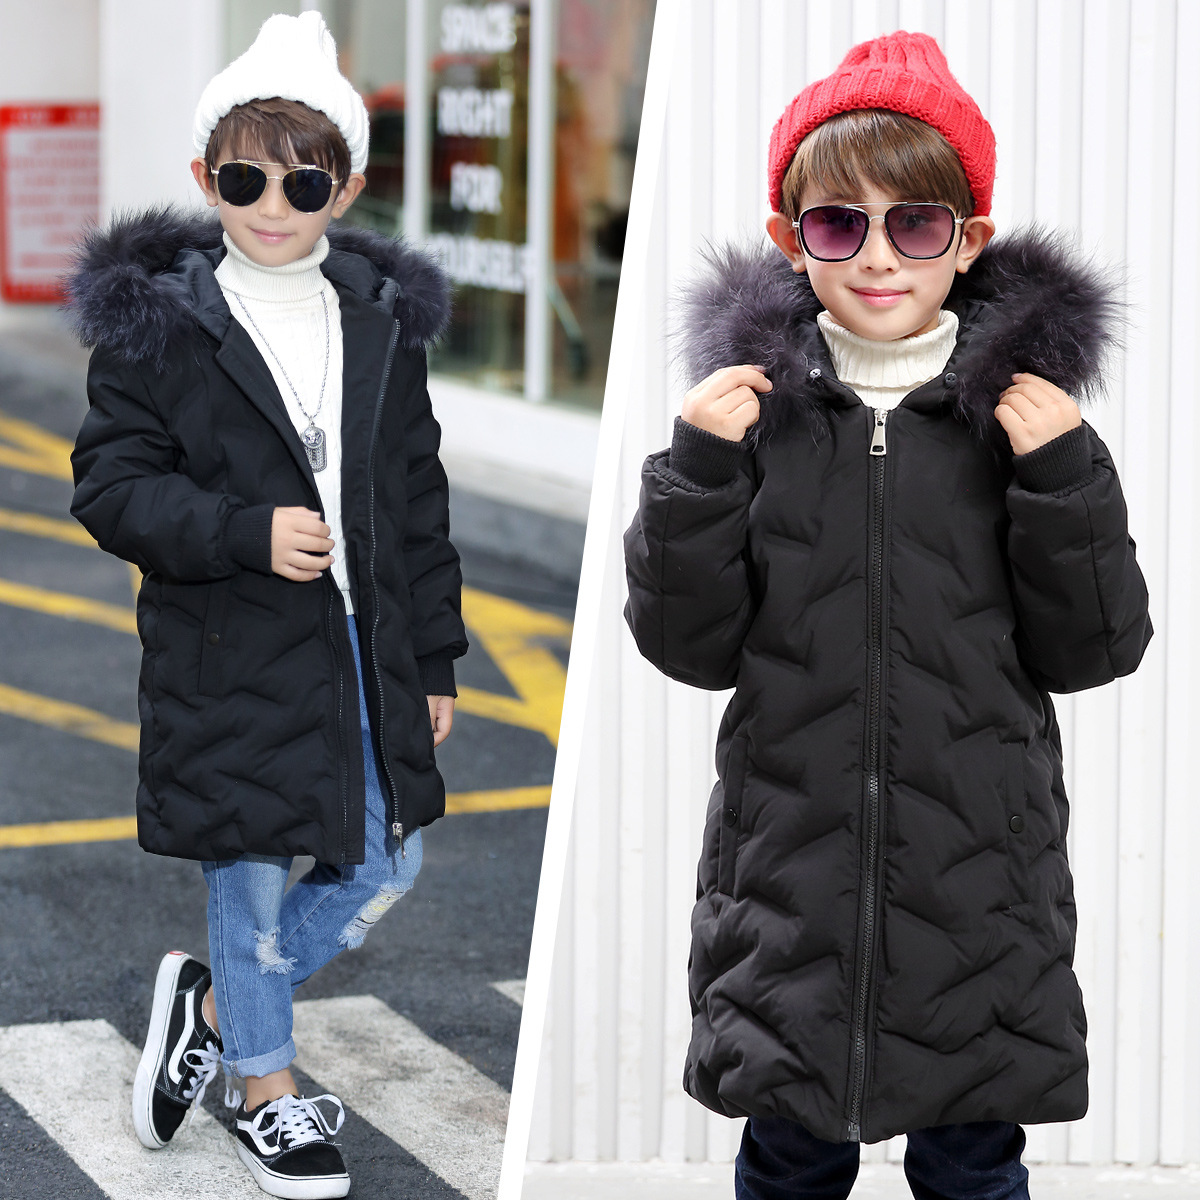 2017 Boys Winter Coats Jackets  White Duck Down Parkas Long Brand Hooded Children Clothes Kids Clothing 6 8 10 12 14 year white duck down winter jacket for girls clothes 2017 autumn hooded kids coat children clothing girl parkas enfant jackets coats